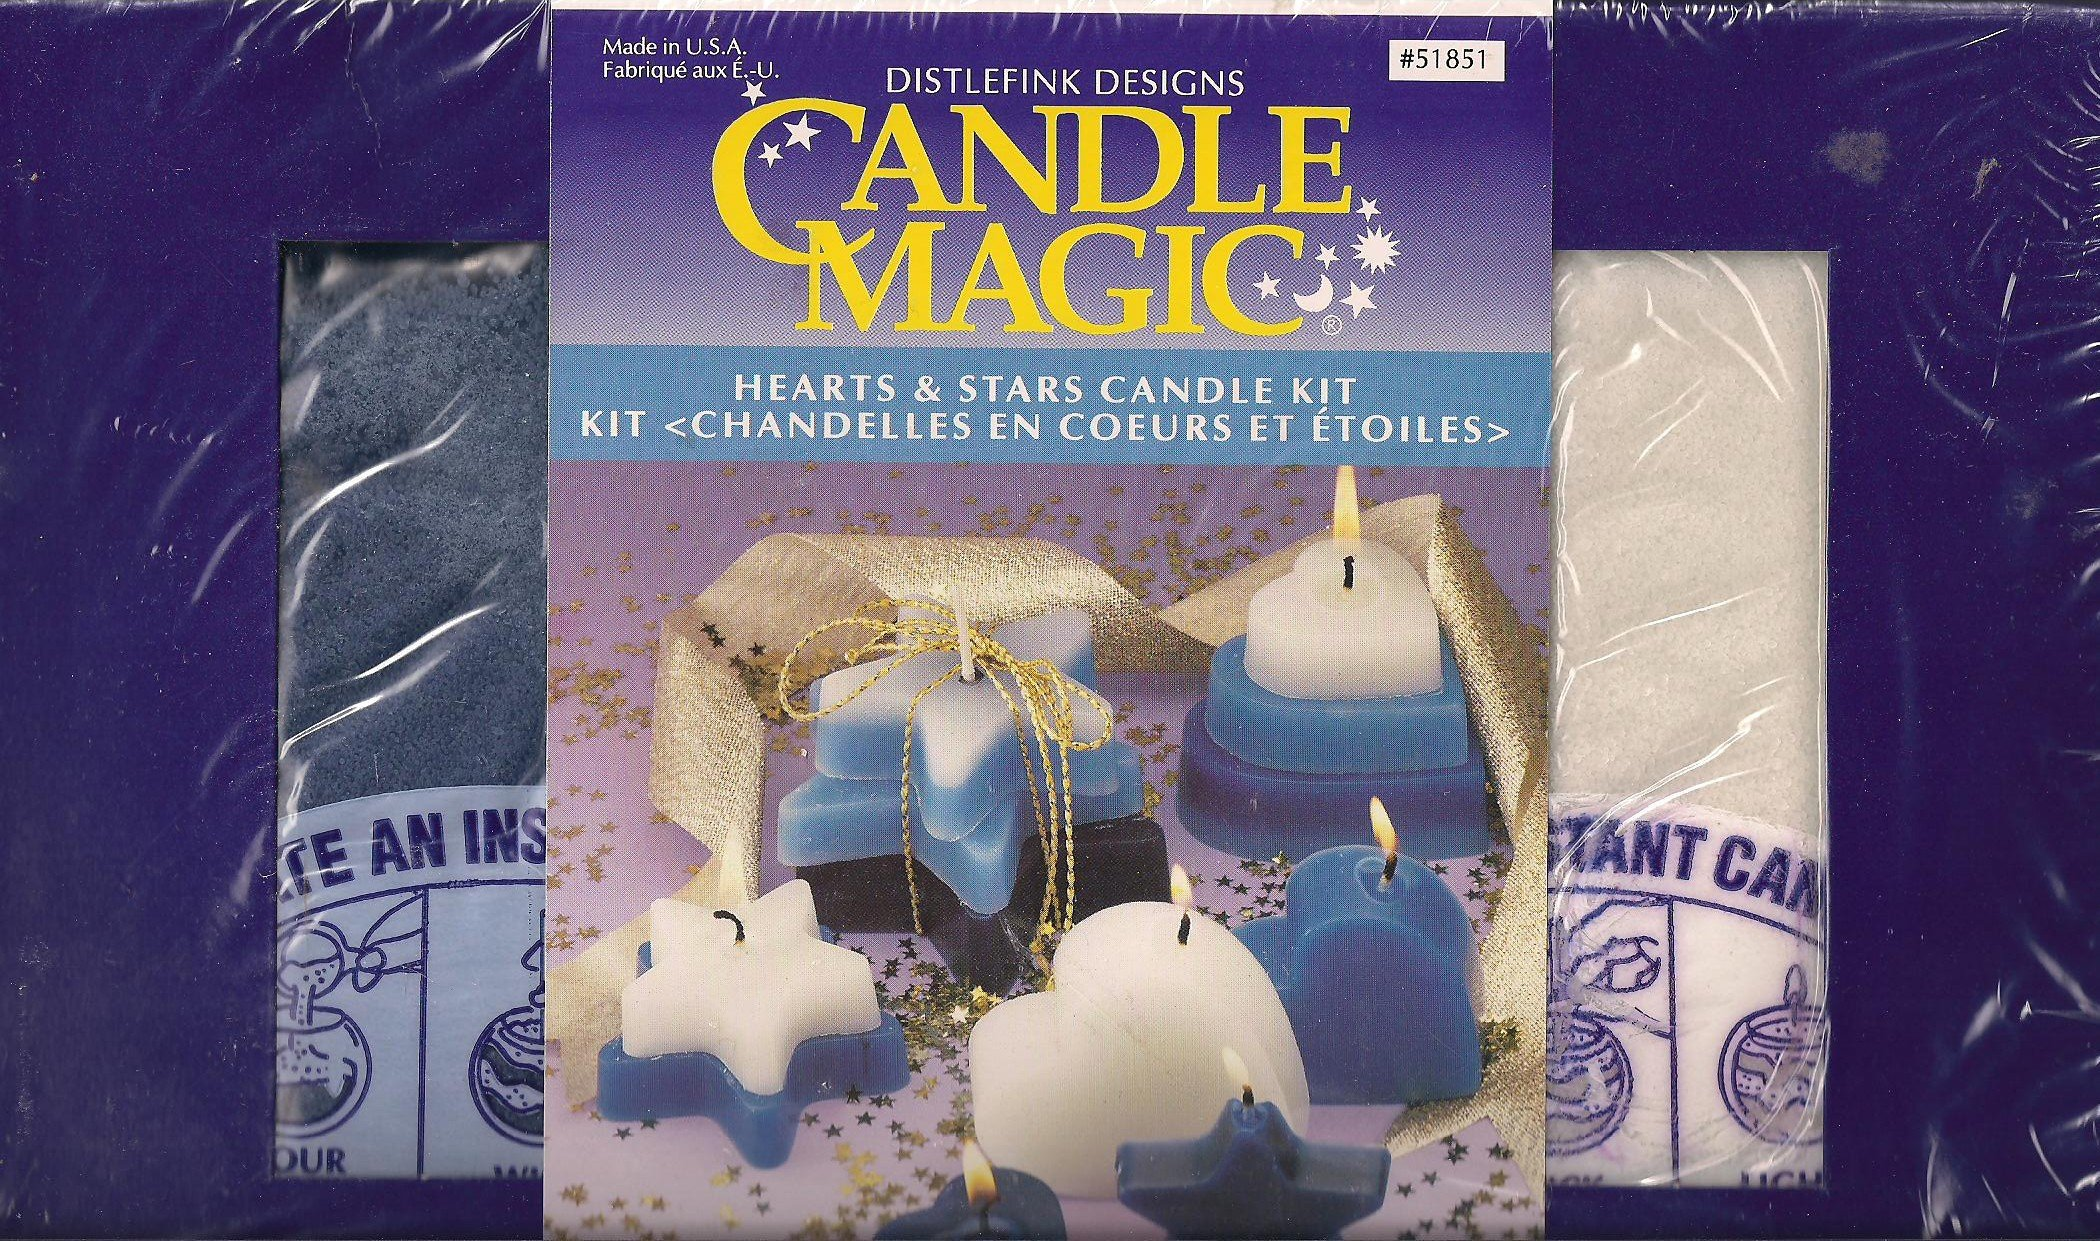 Candle Magic Hearts & Stars Candle Kit